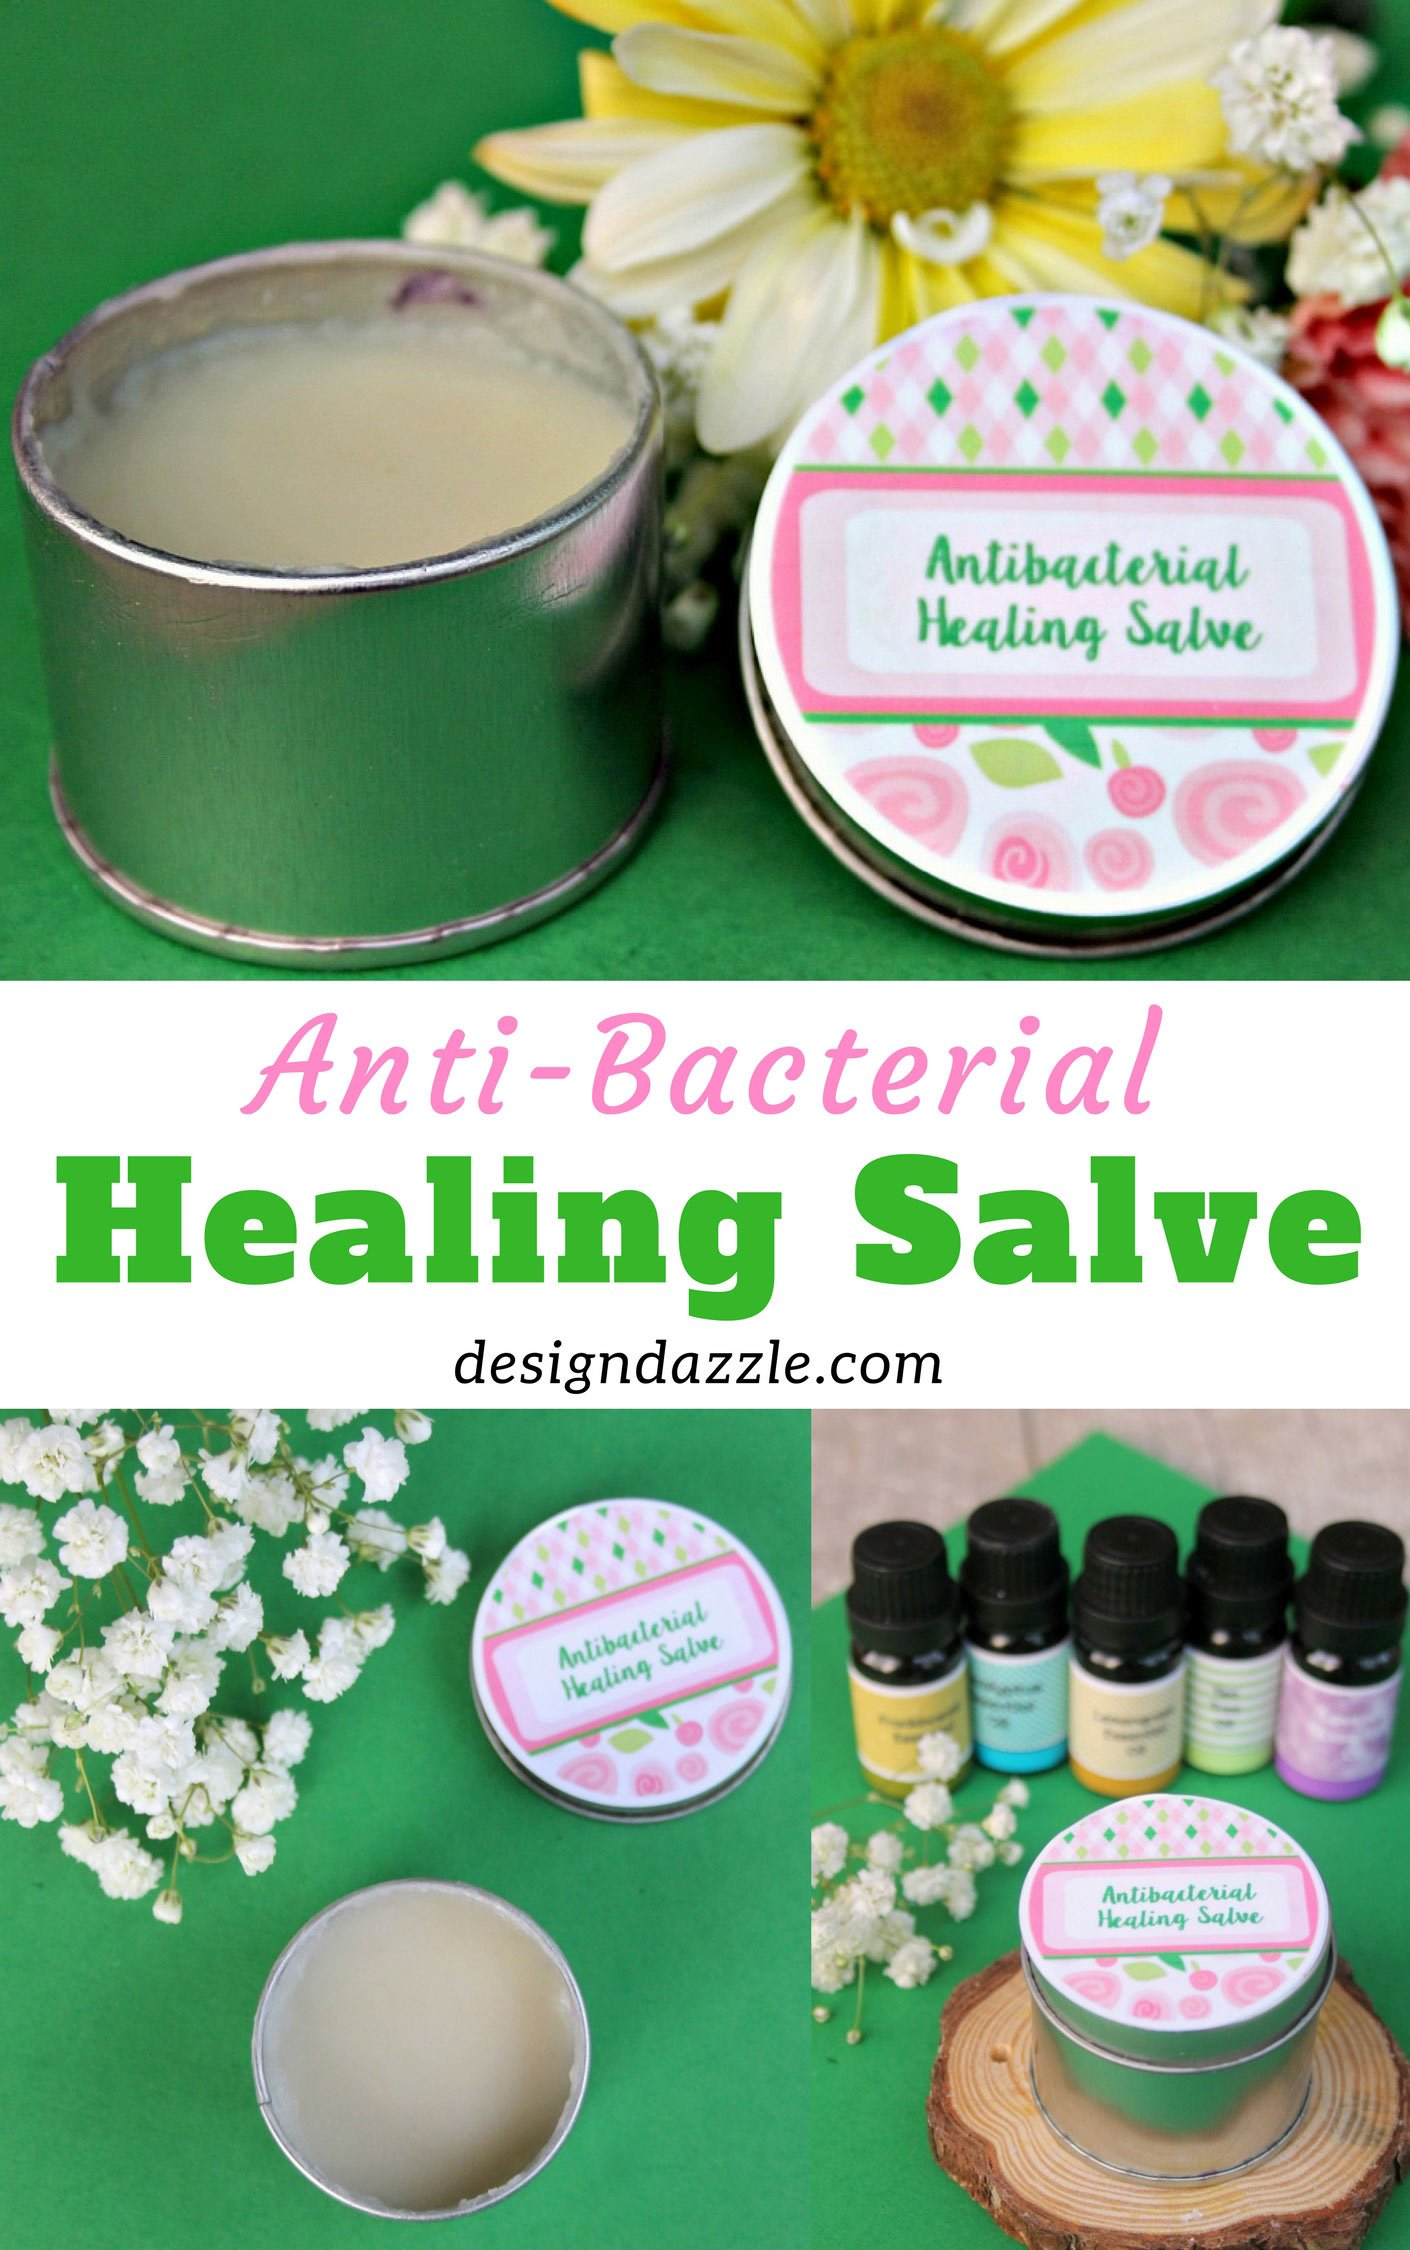 You will love this healing essential oils salve! It's so easy to make and so amazing. It helps soothe and heal minor cuts, bruises, and burns.